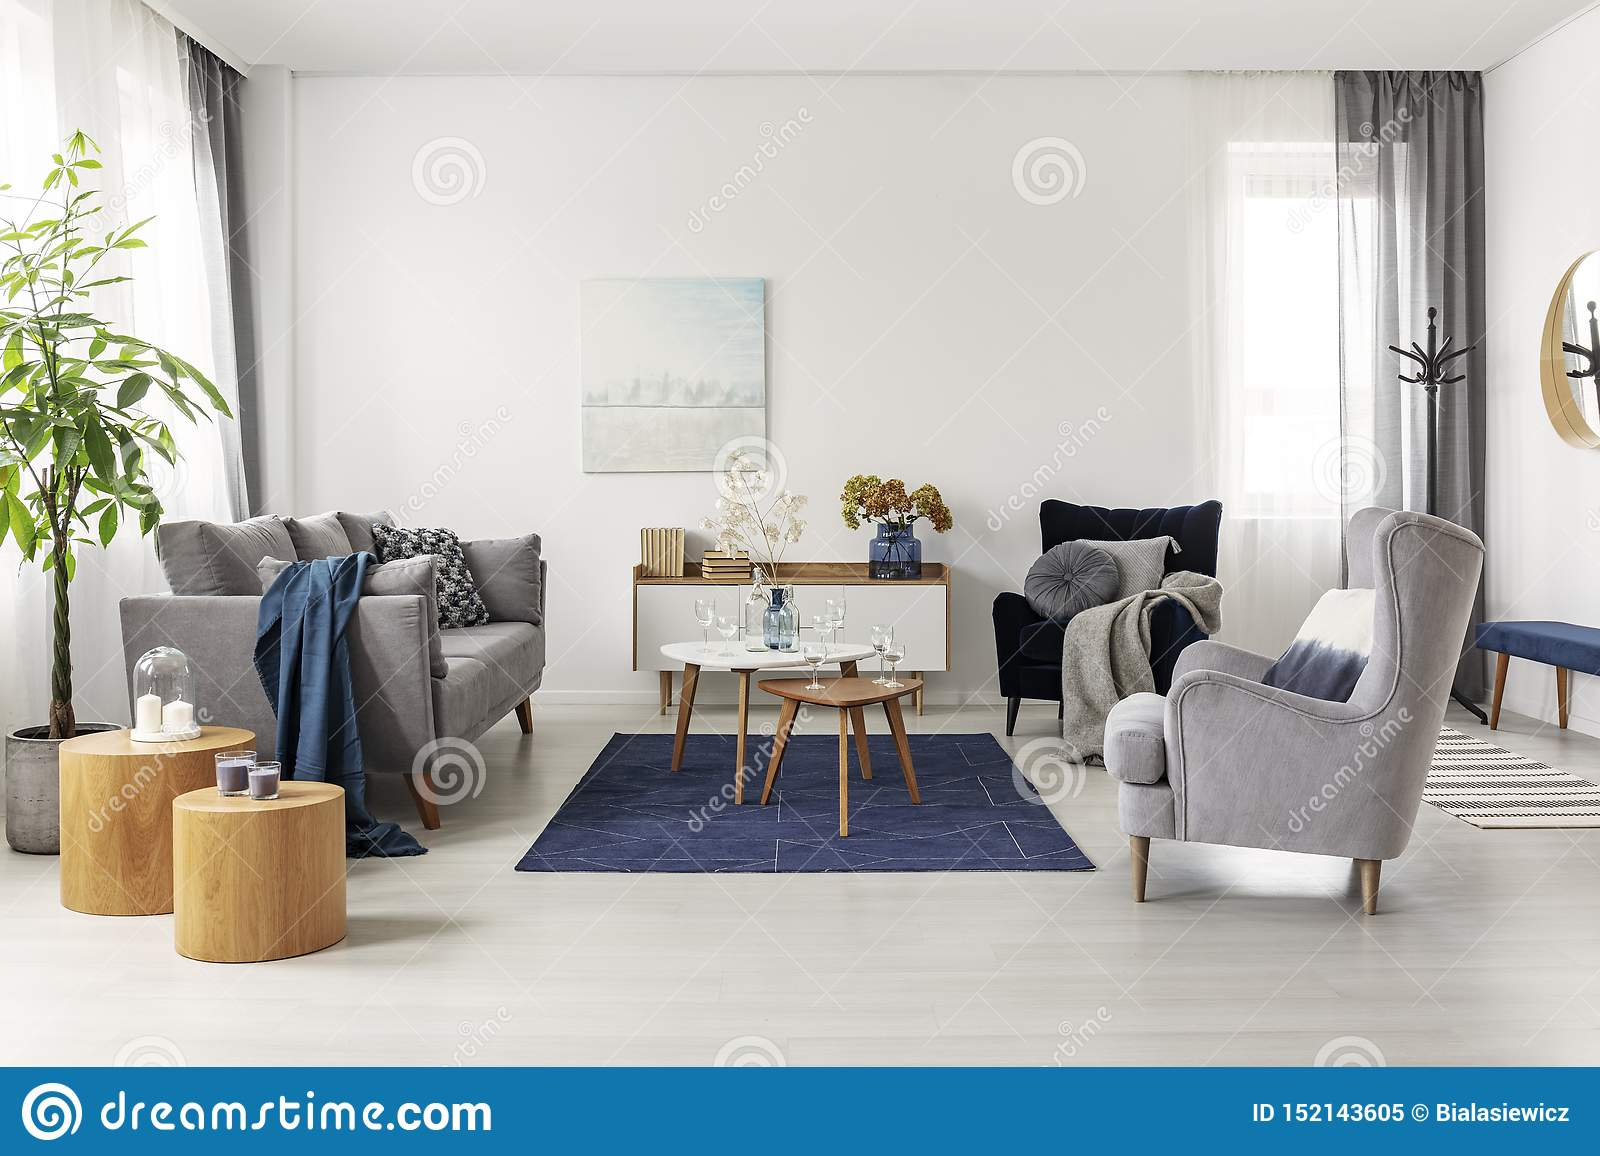 Grey And Navy Blue Living Room Interior With Comfortable ...